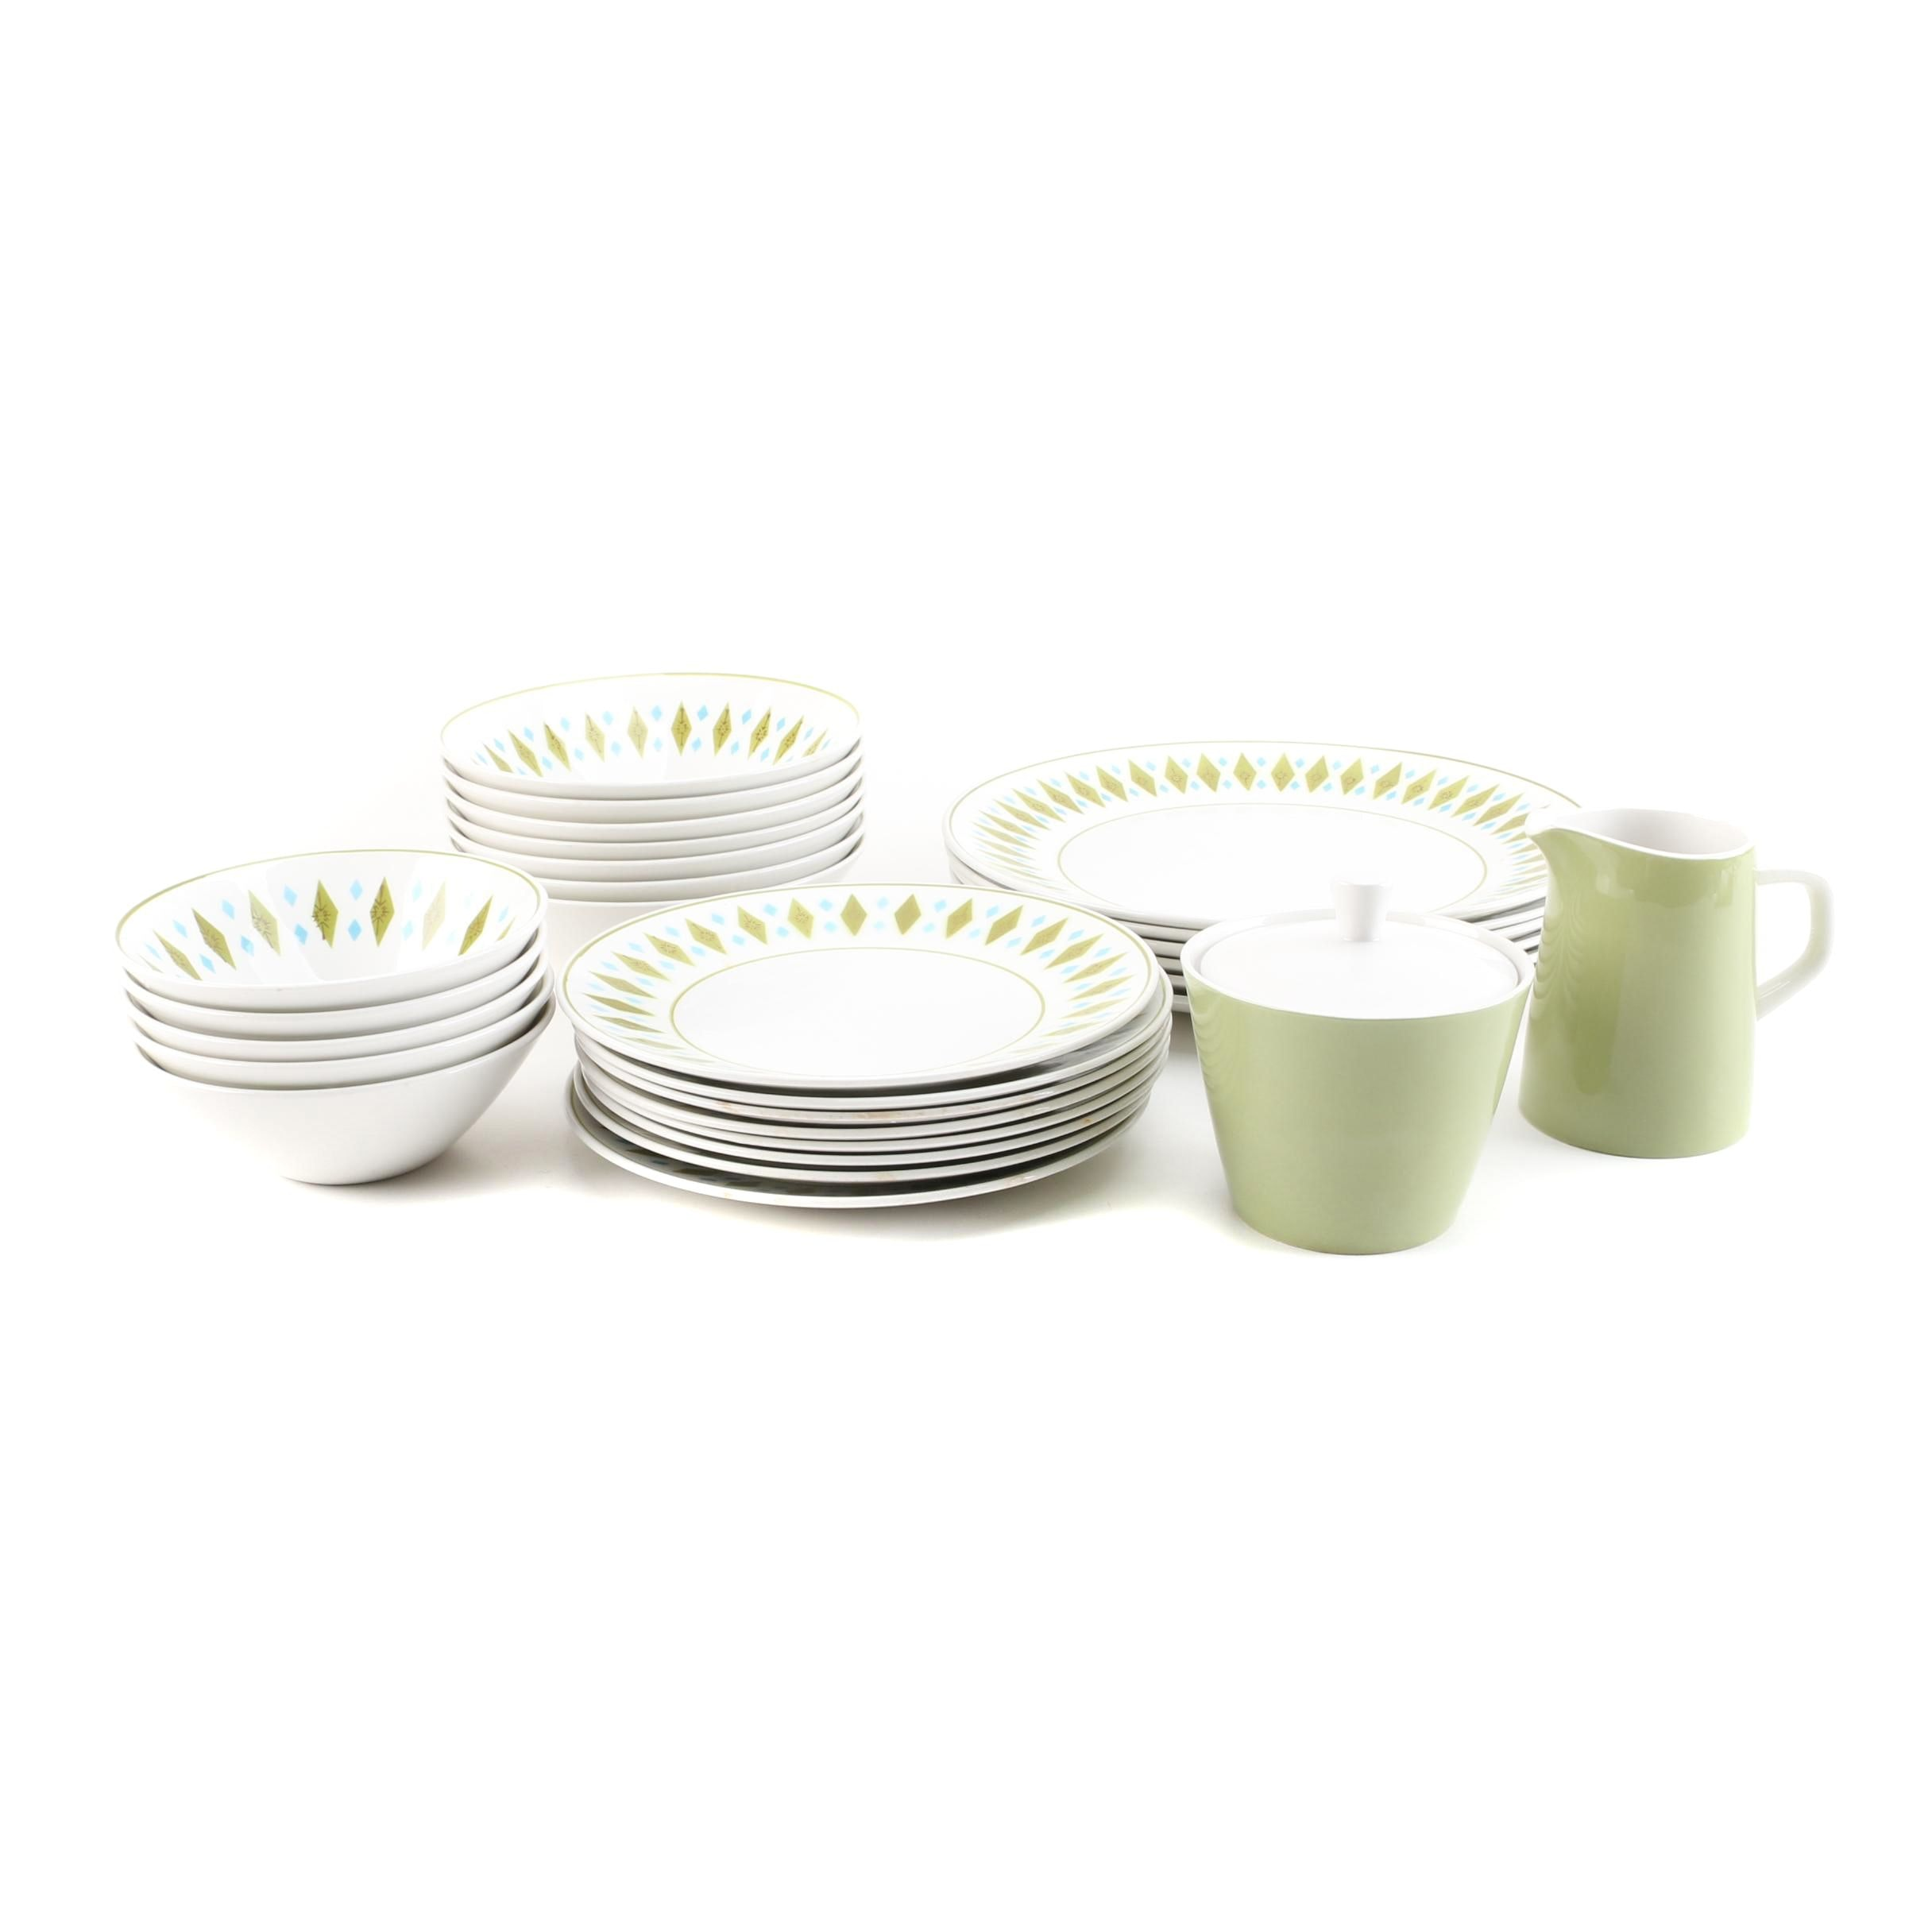 Mikasa Cerastone  Gem  and  Green  Dinnerware ...  sc 1 st  EBTH.com : tableware serving dishes - pezcame.com